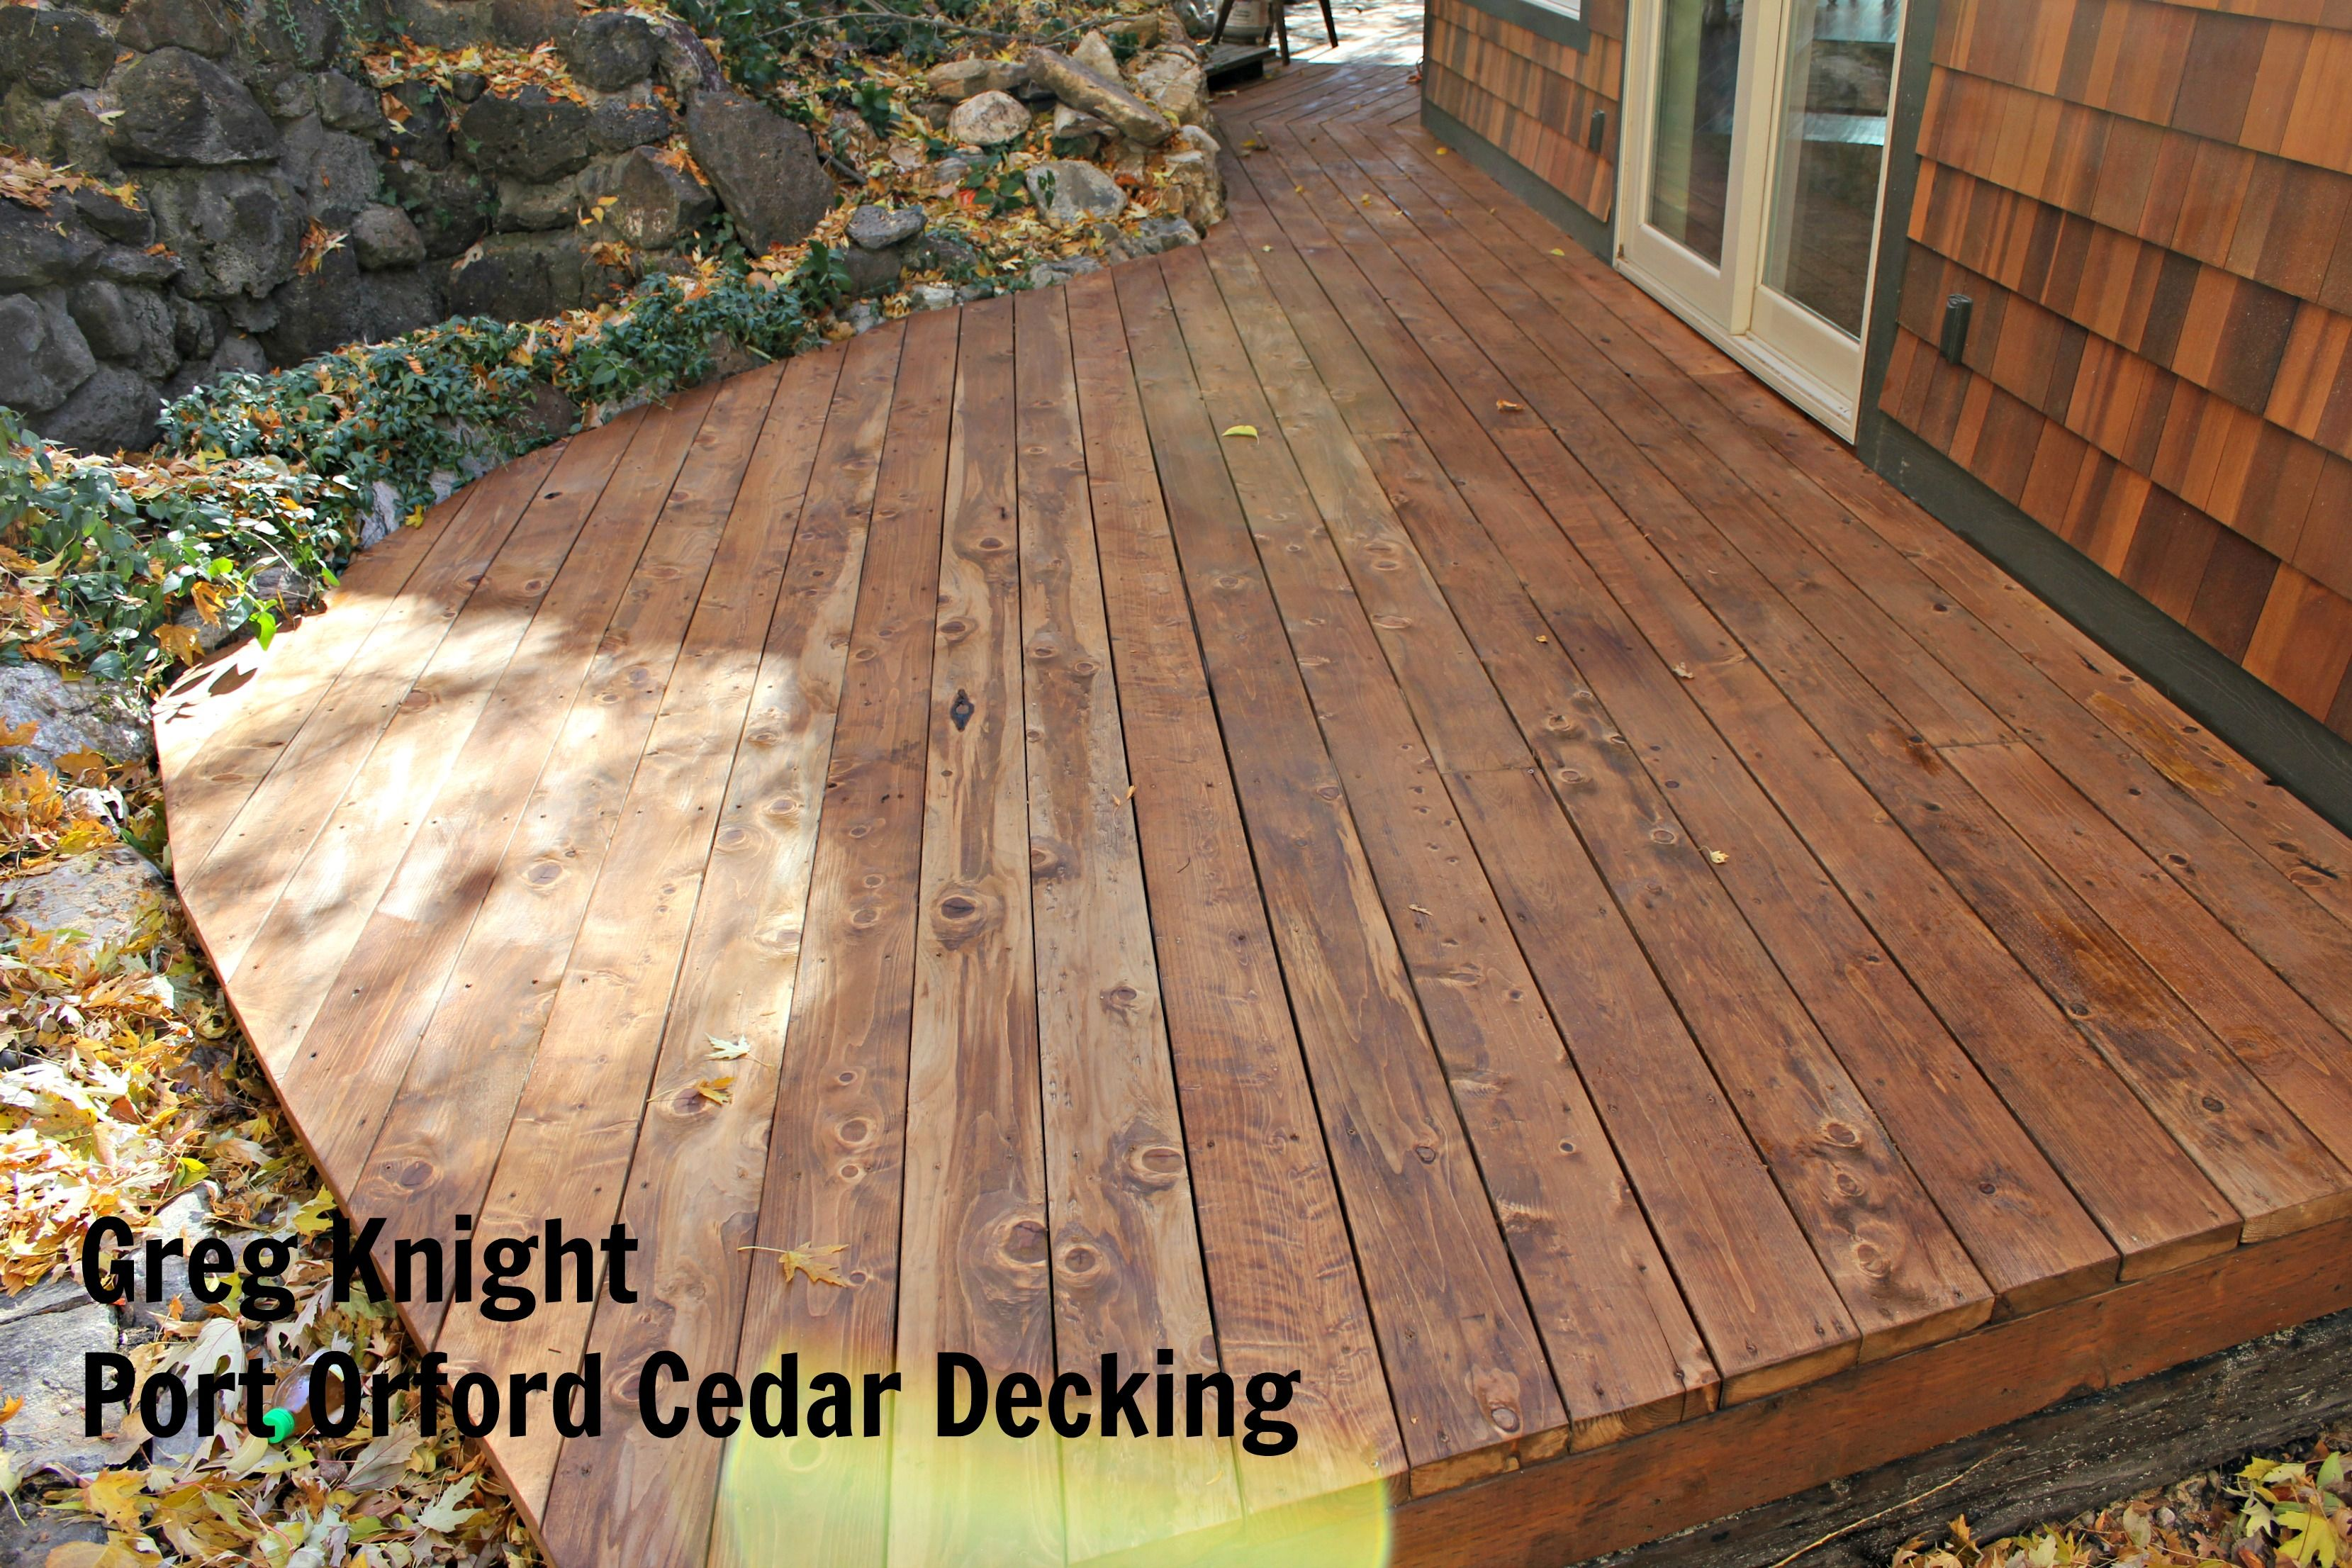 Take A Look At This Beautiful Cedar Deck From Contestant Greg Knight This Decking Is Very Durable And Holds Up Well Agai Cedar Deck Cedar Siding Rustic